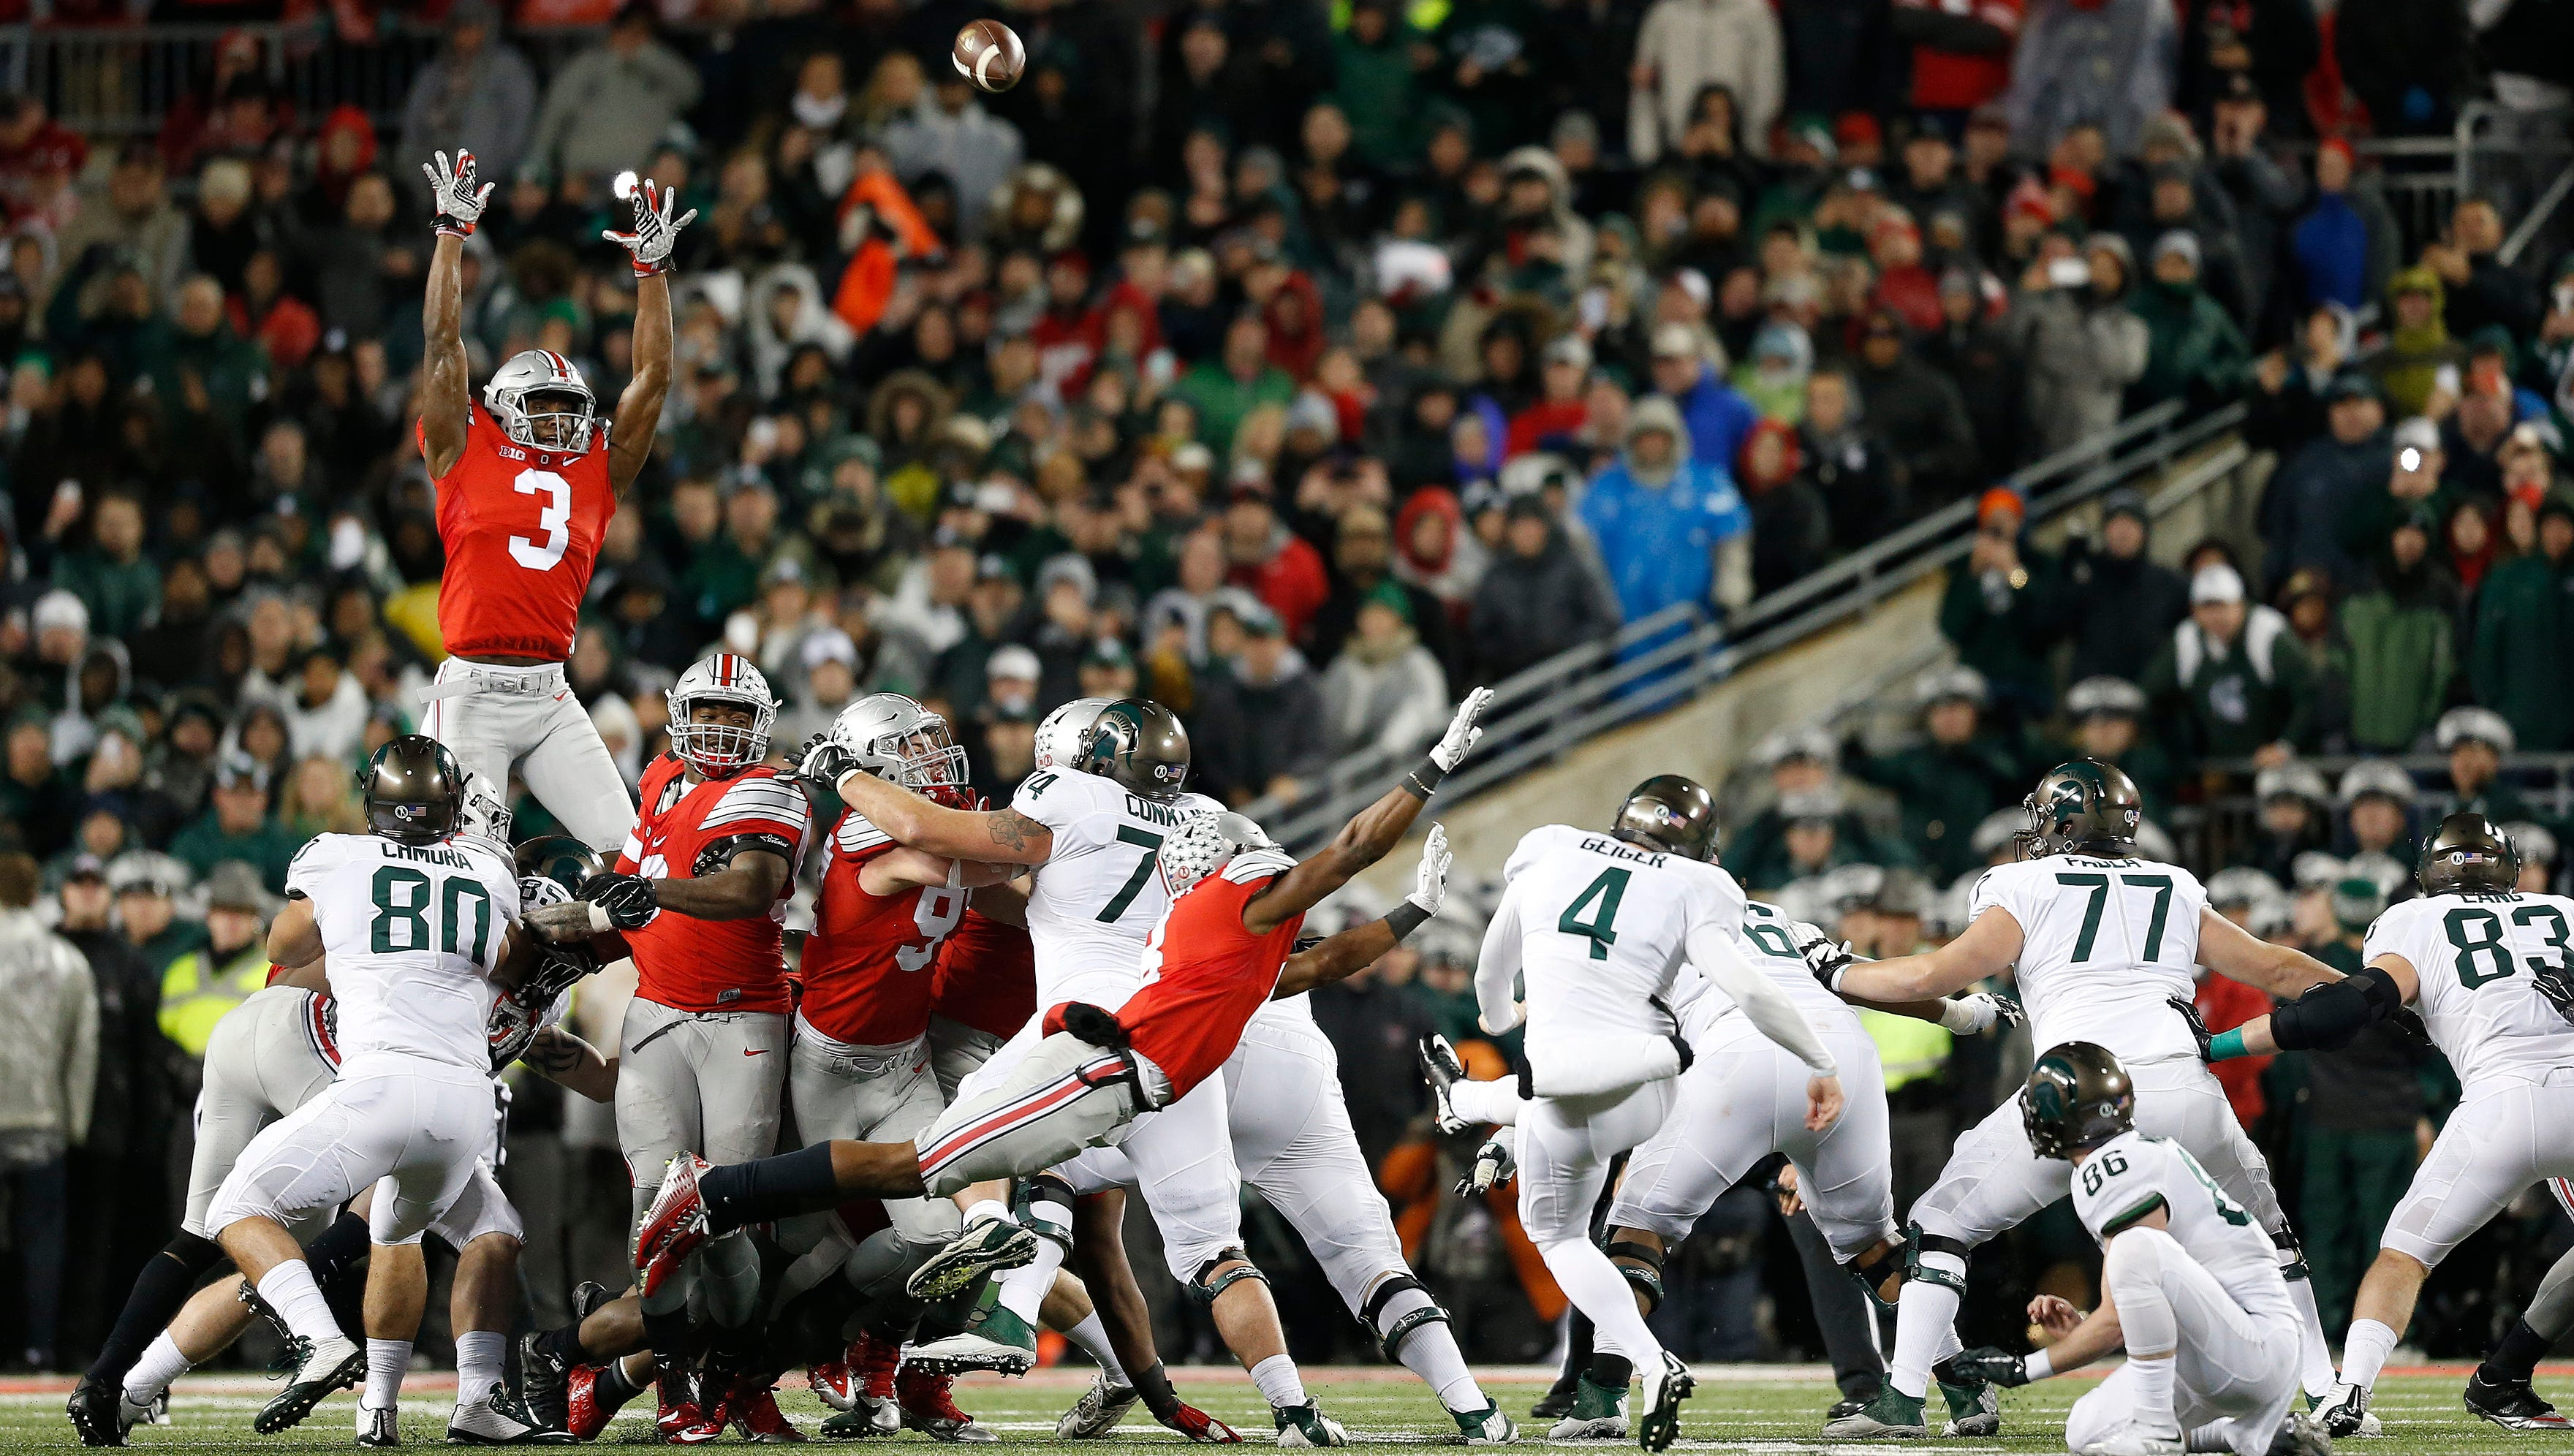 Michigan State's Michael Geiger (4) kicks a 41-yard field goal as time expires during the fourth quarter at Ohio Stadium in Columbus on Nov. 21, 2015.